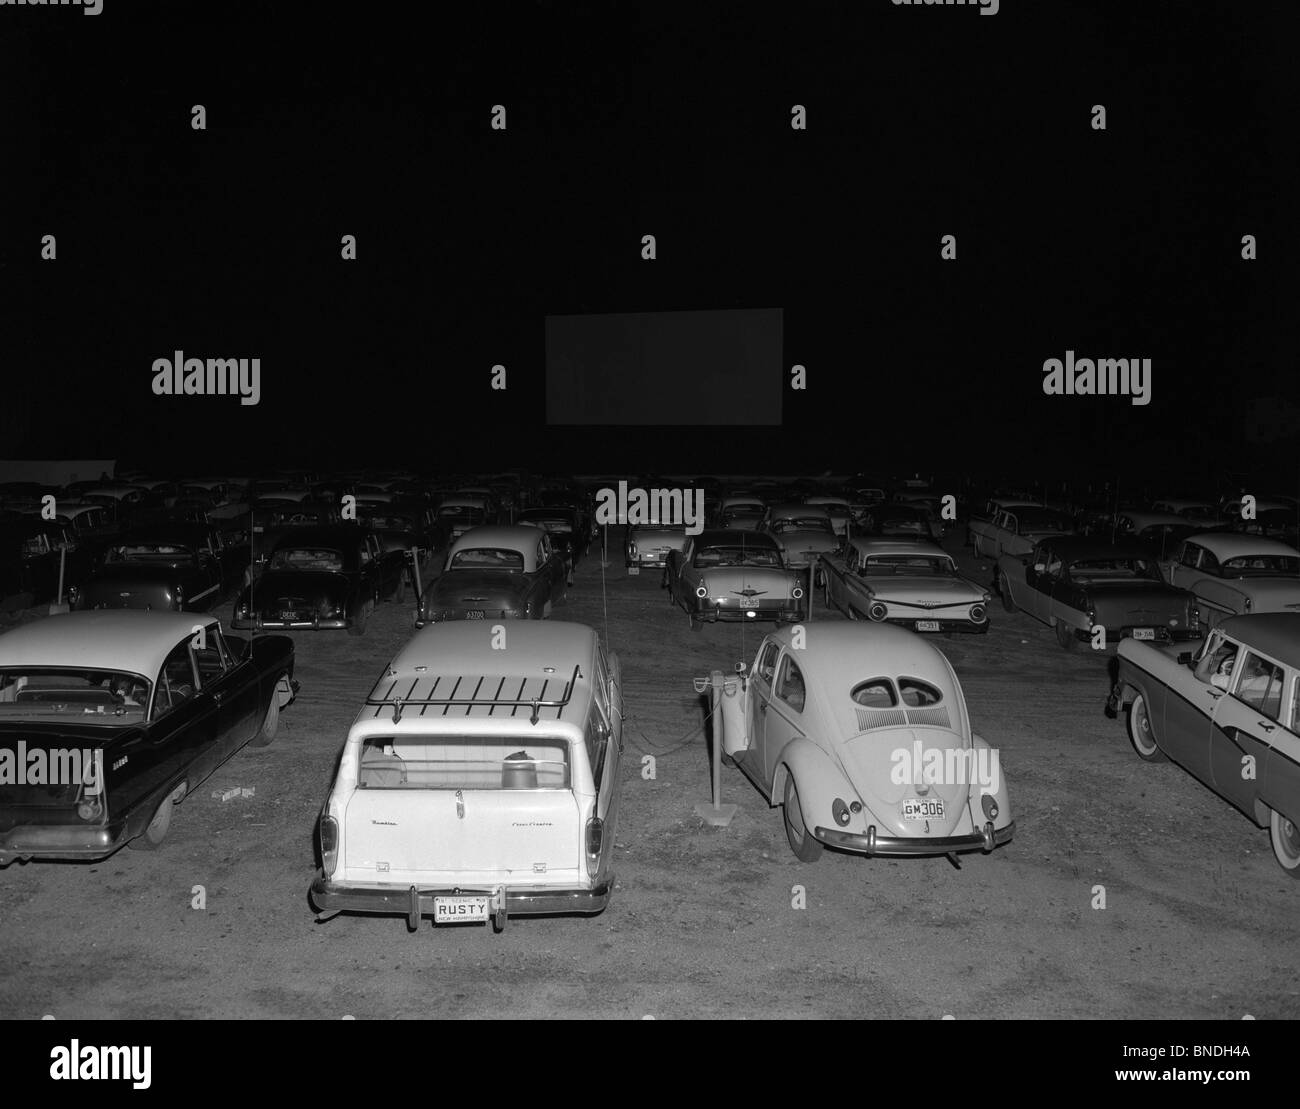 Cars parked at a Drive-in Theater, White River Junction, Vermont, USA - Stock Image